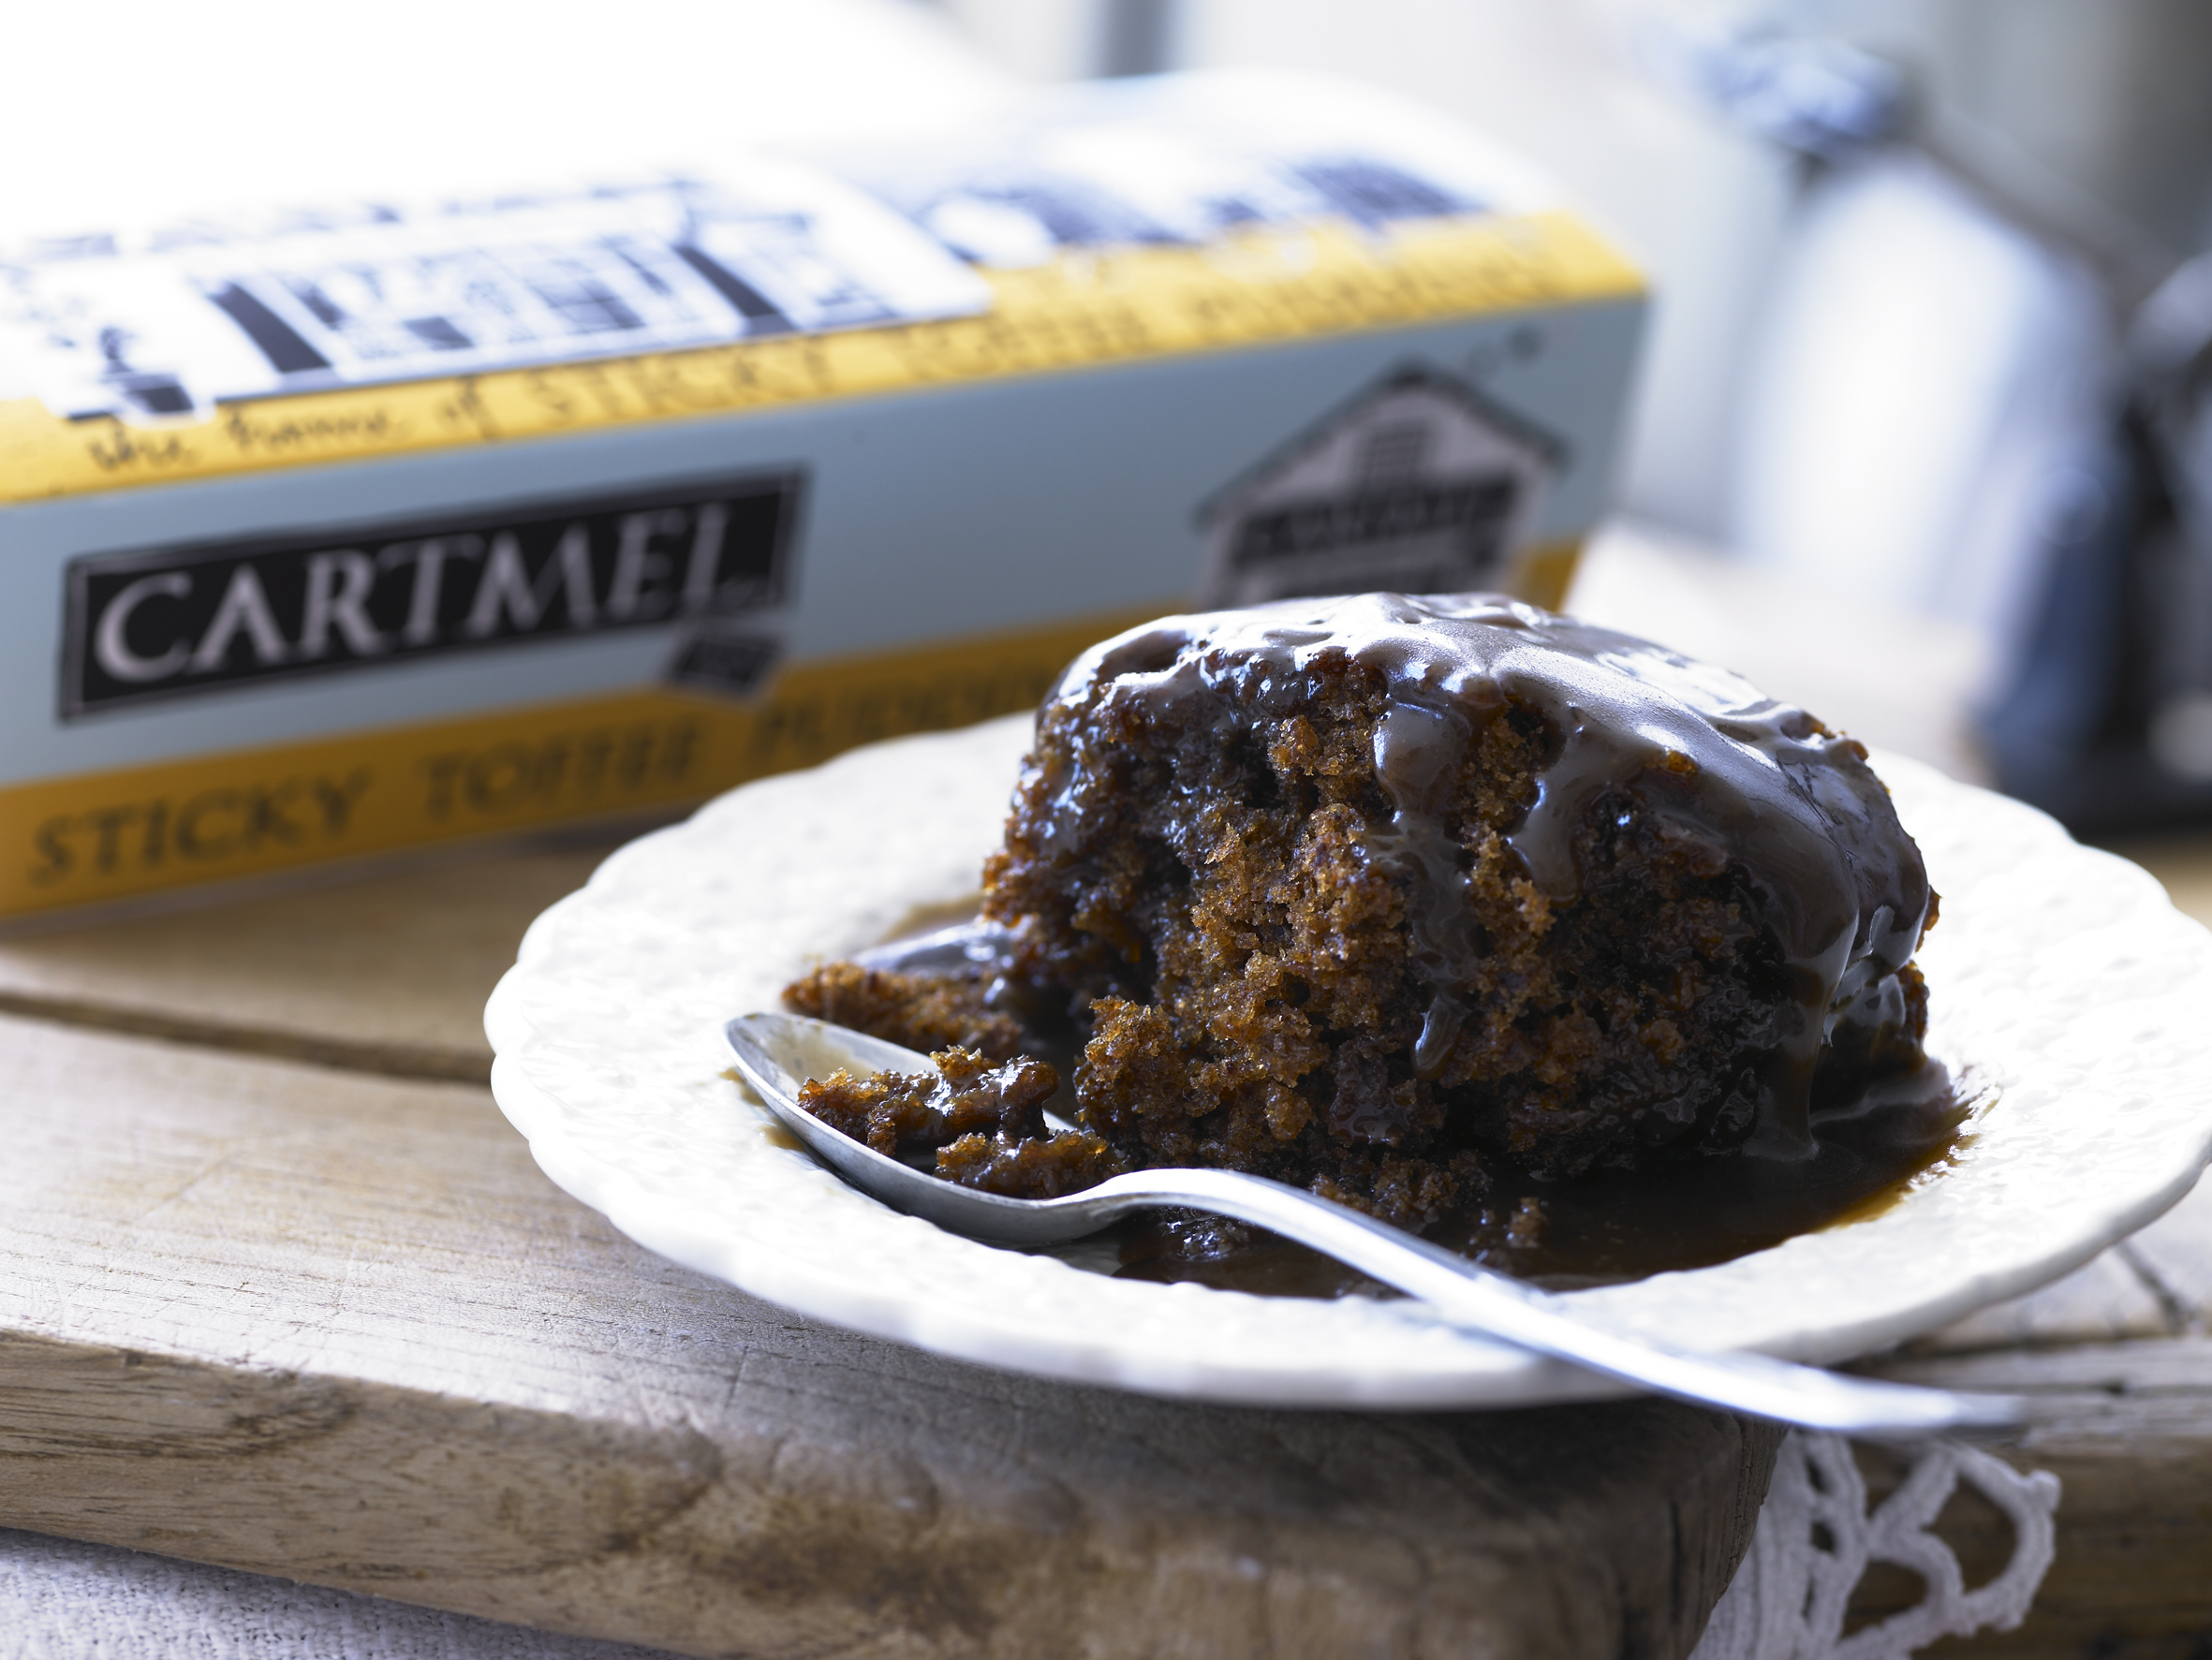 Pudding of the Month Club - Cartmel Village Shop